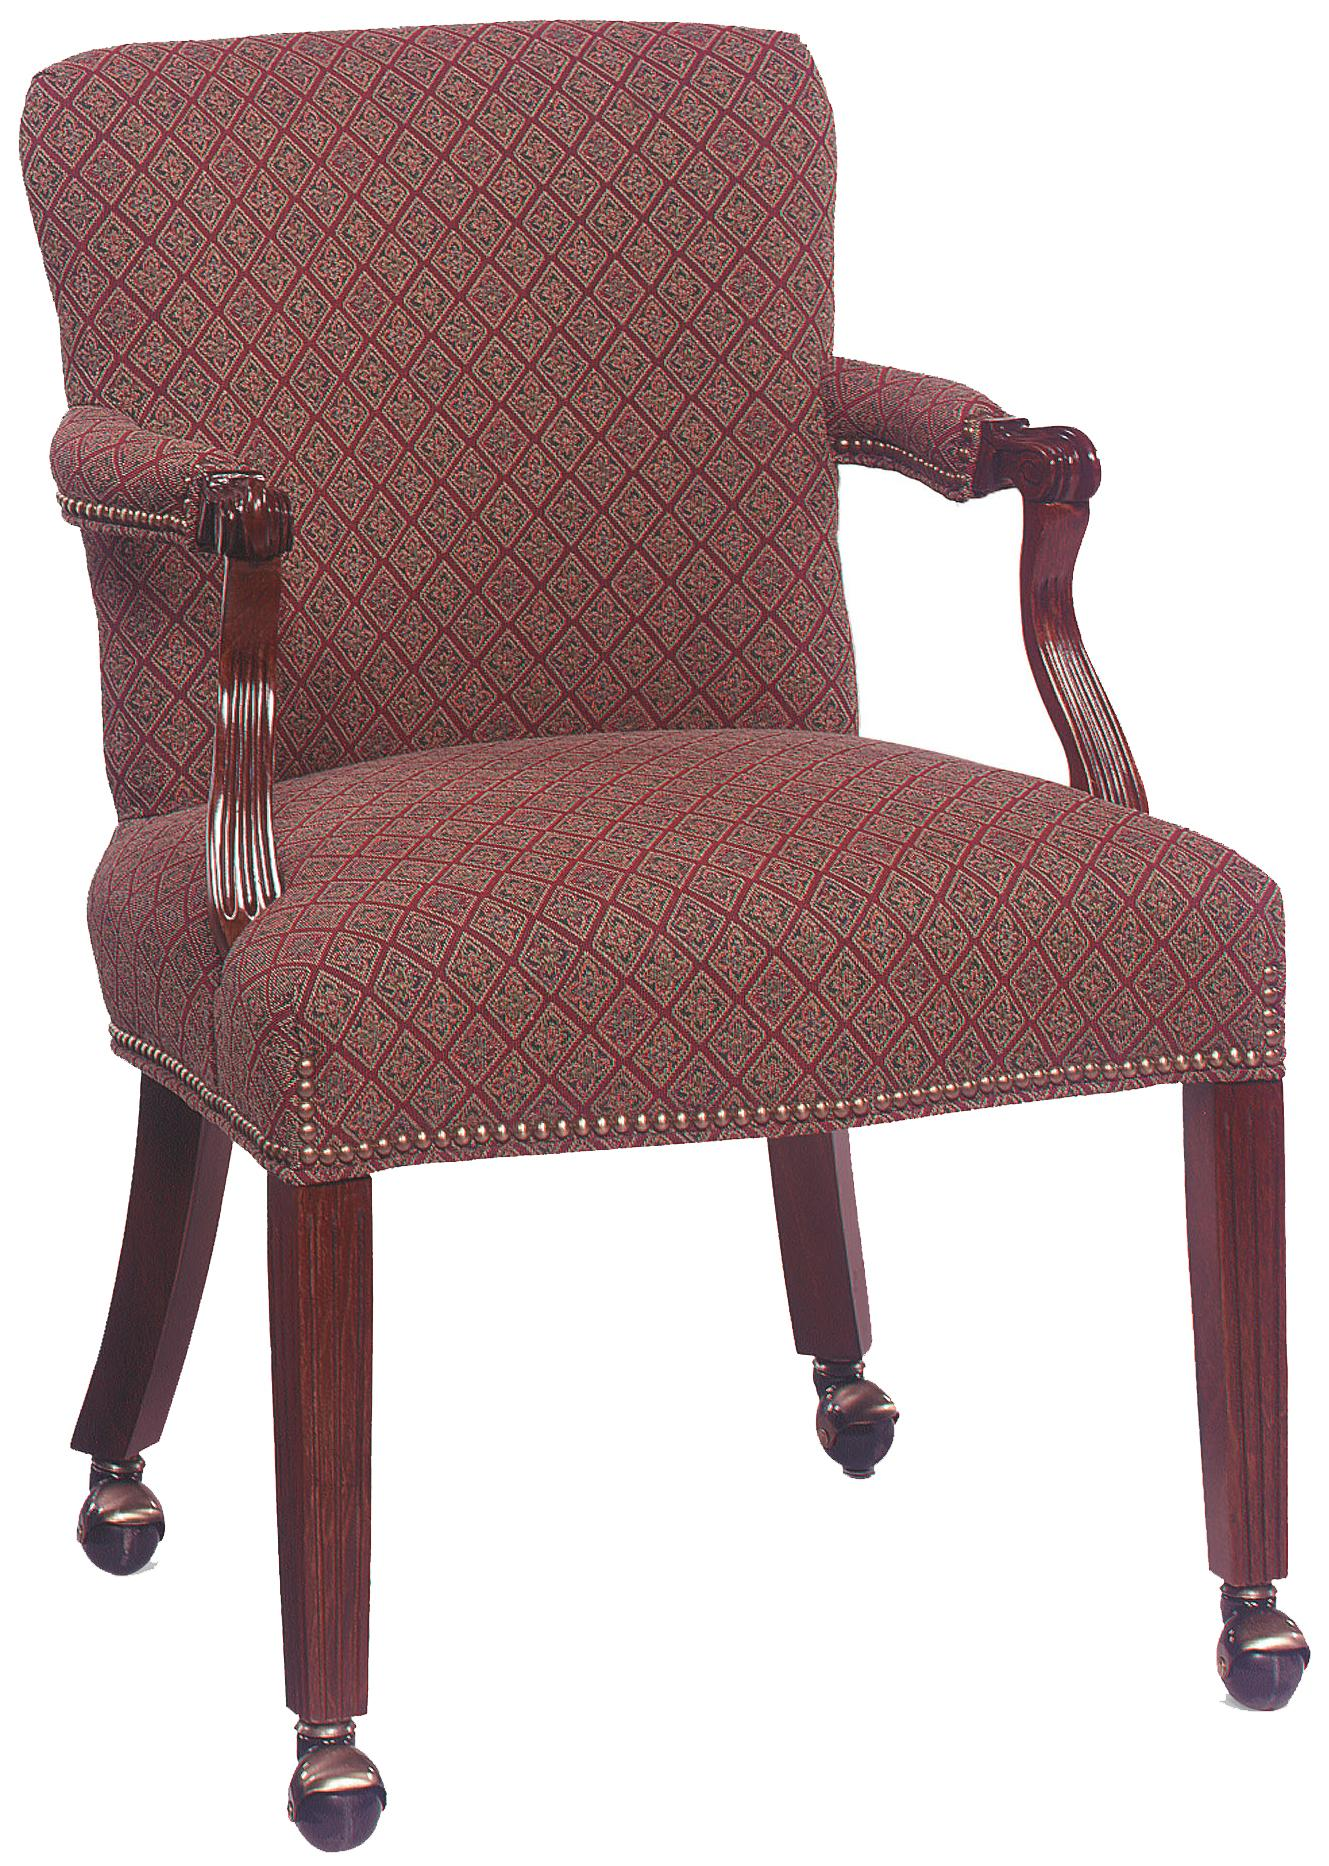 traditional occasional chairs shower chair with arms cpt code fairfield exposed wood